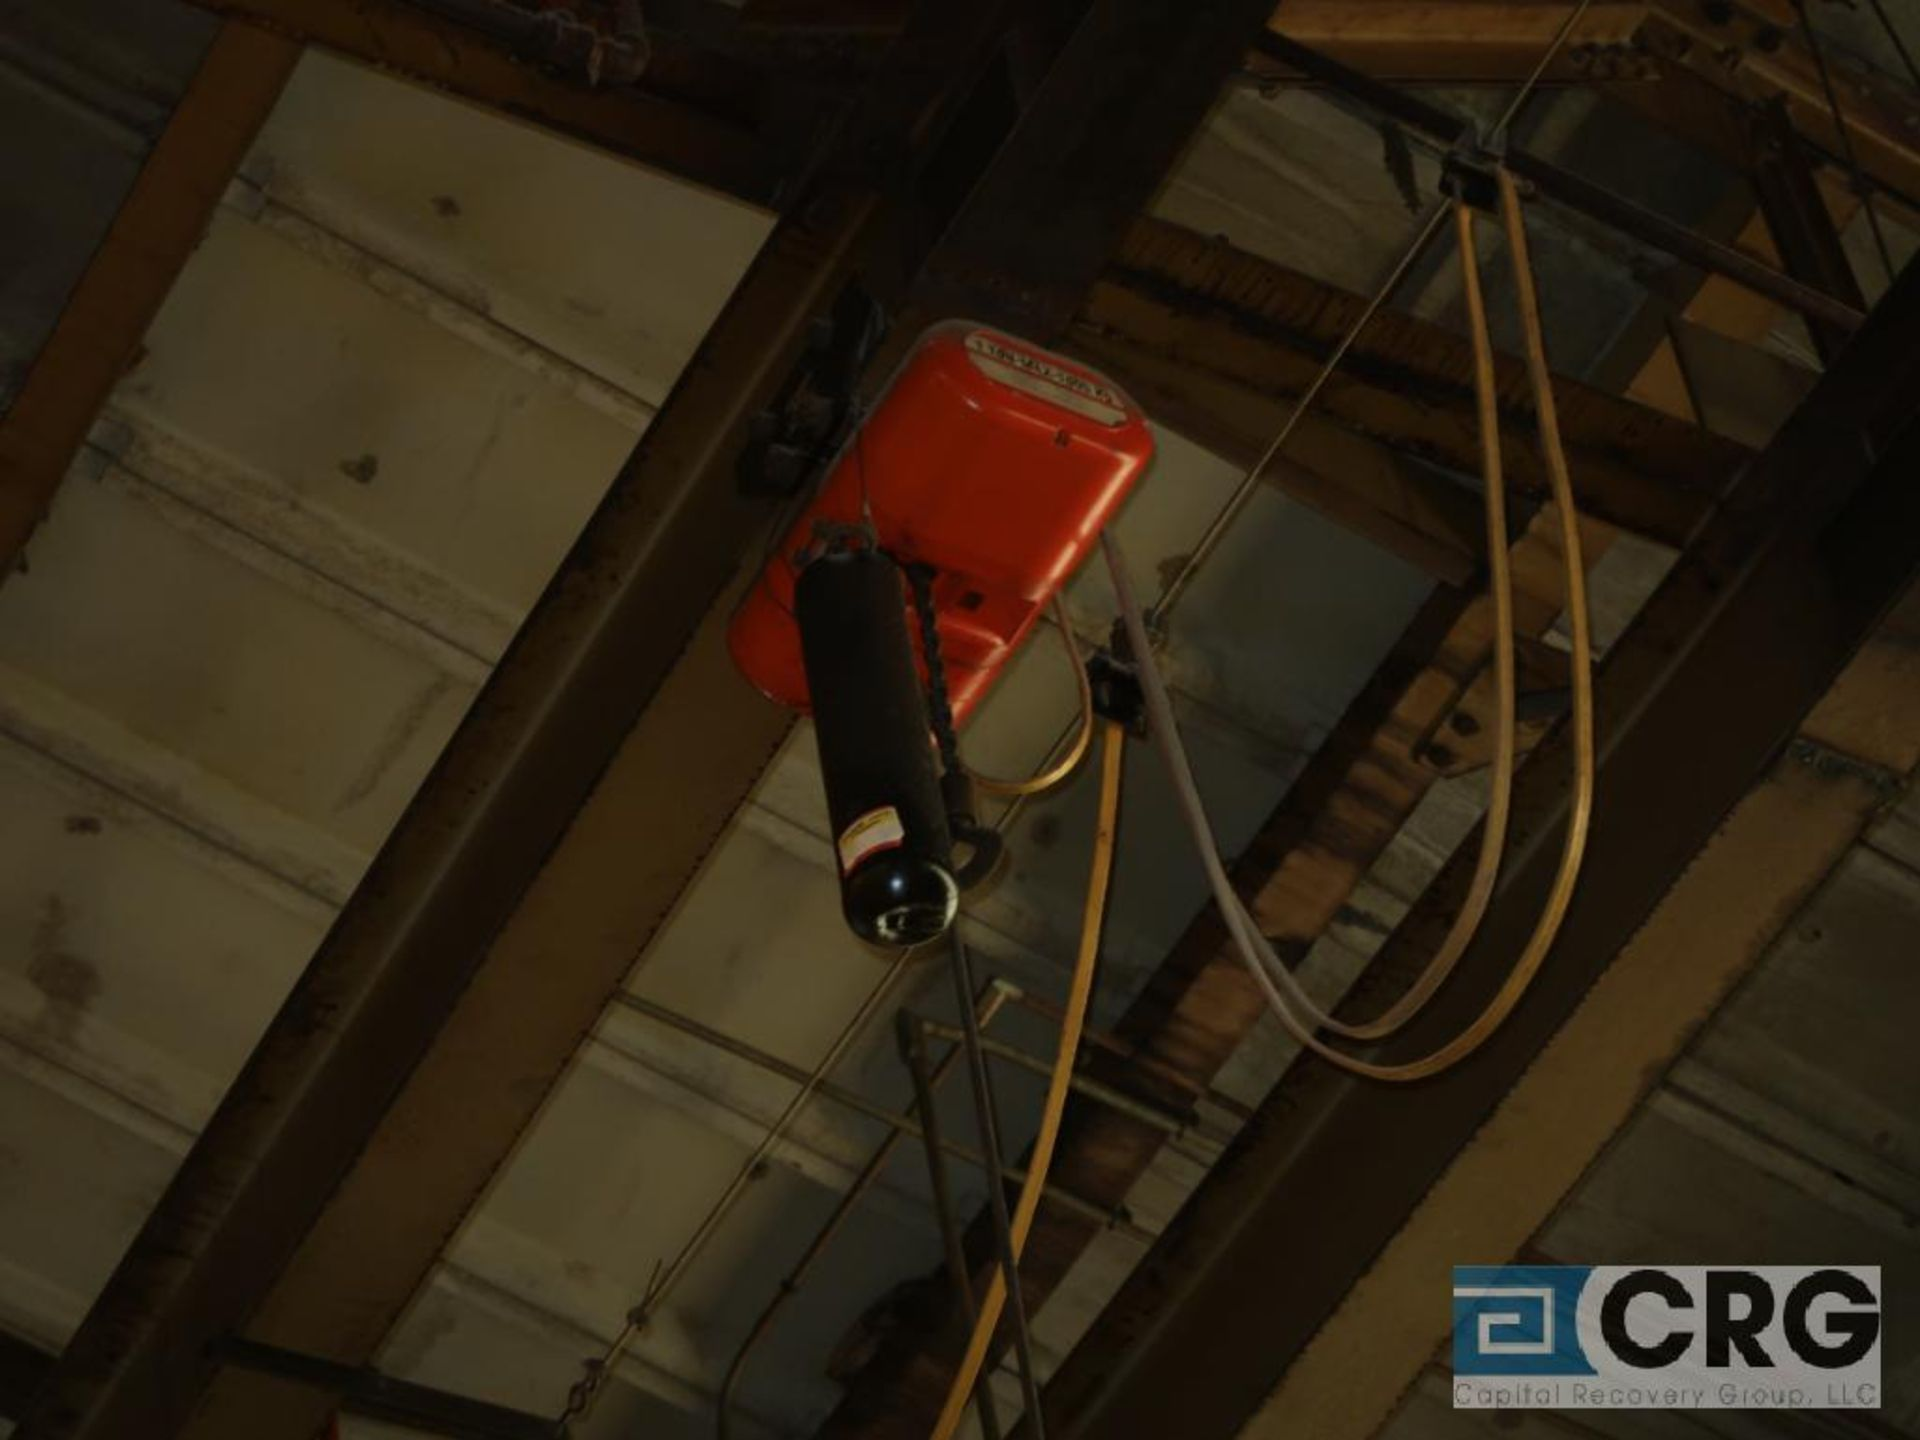 Konecranes XN25 electric hoist, 3 ton cap., hoist only, no beam-LATE DELIVERY (Located on Level - Image 5 of 12